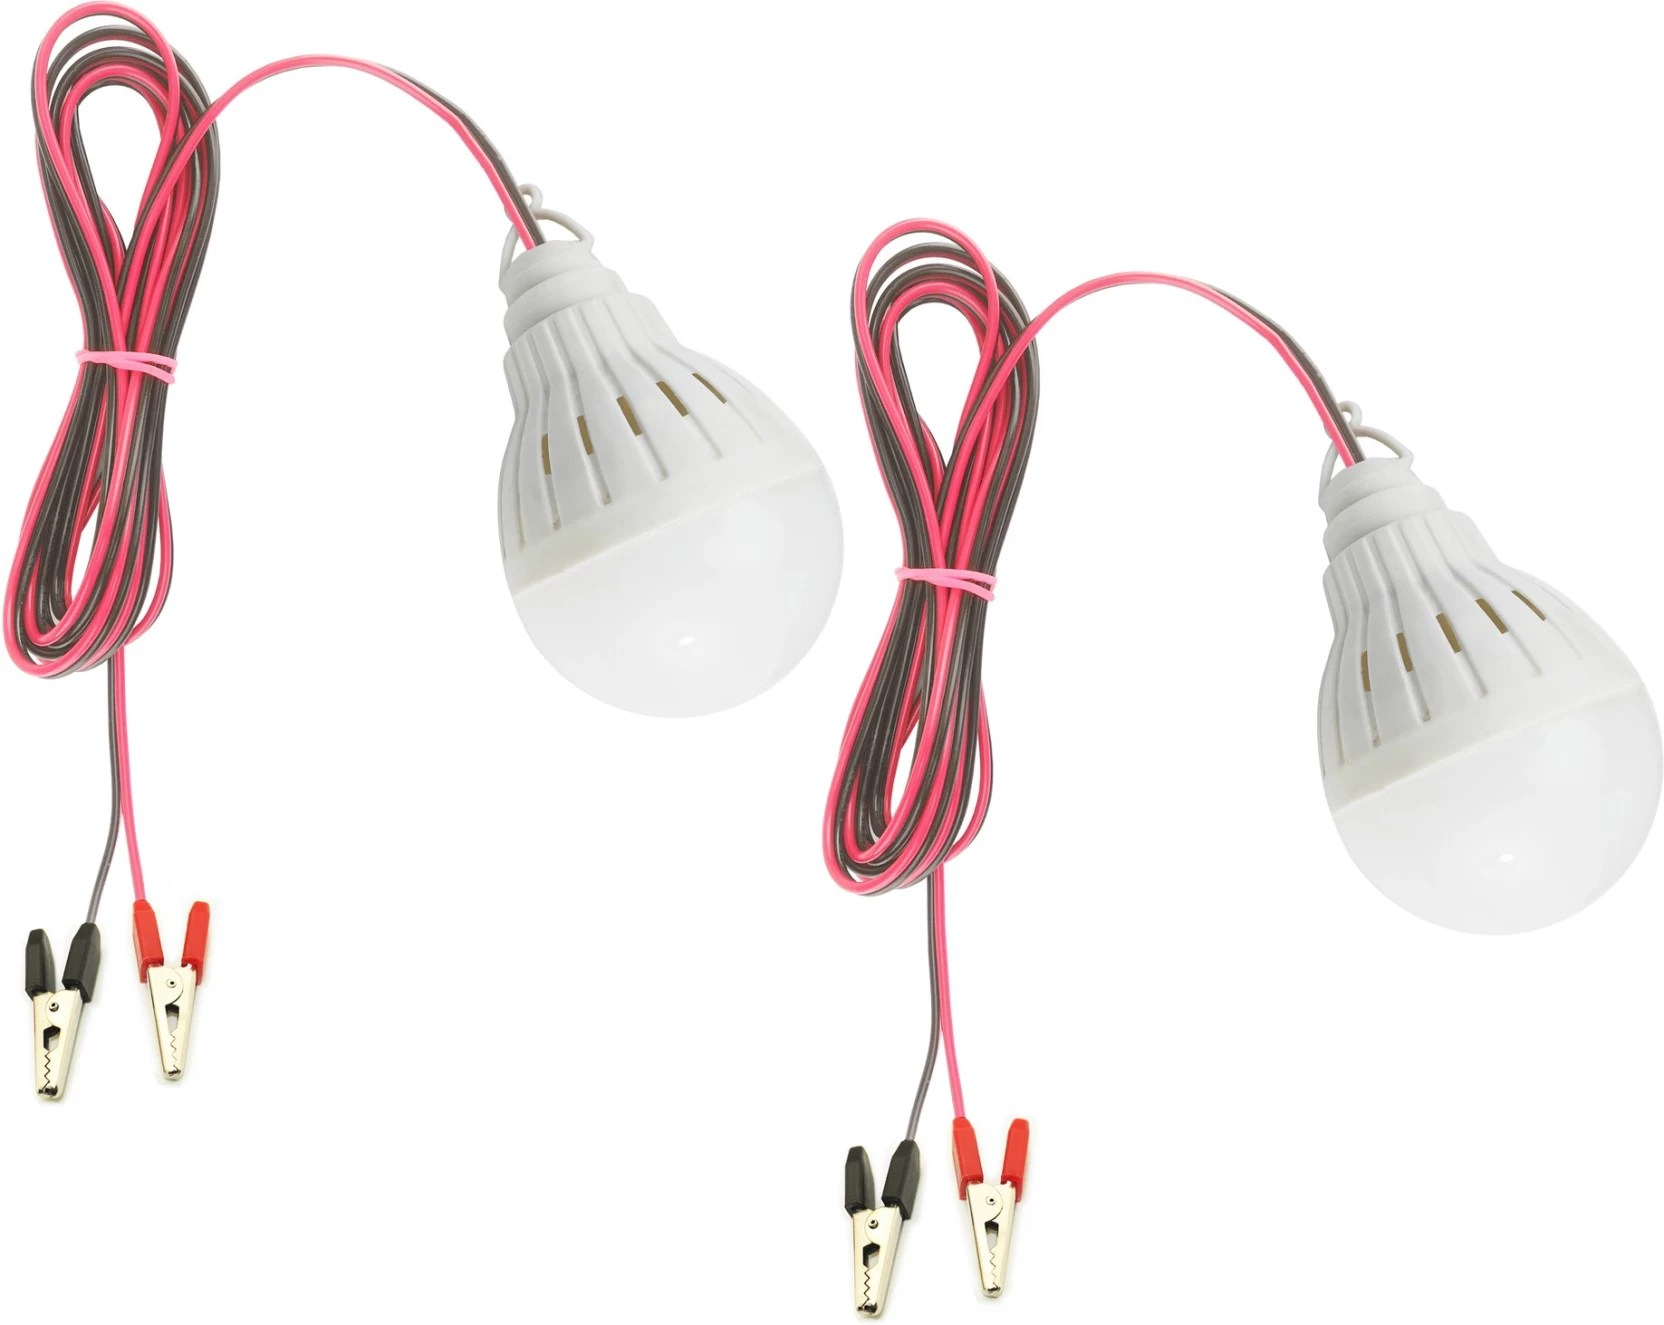 hight resolution of nasa tech 12v 5watts dc solar led light high brightness bulb with 2mtr long wire and clips pack of 2 emergency light white